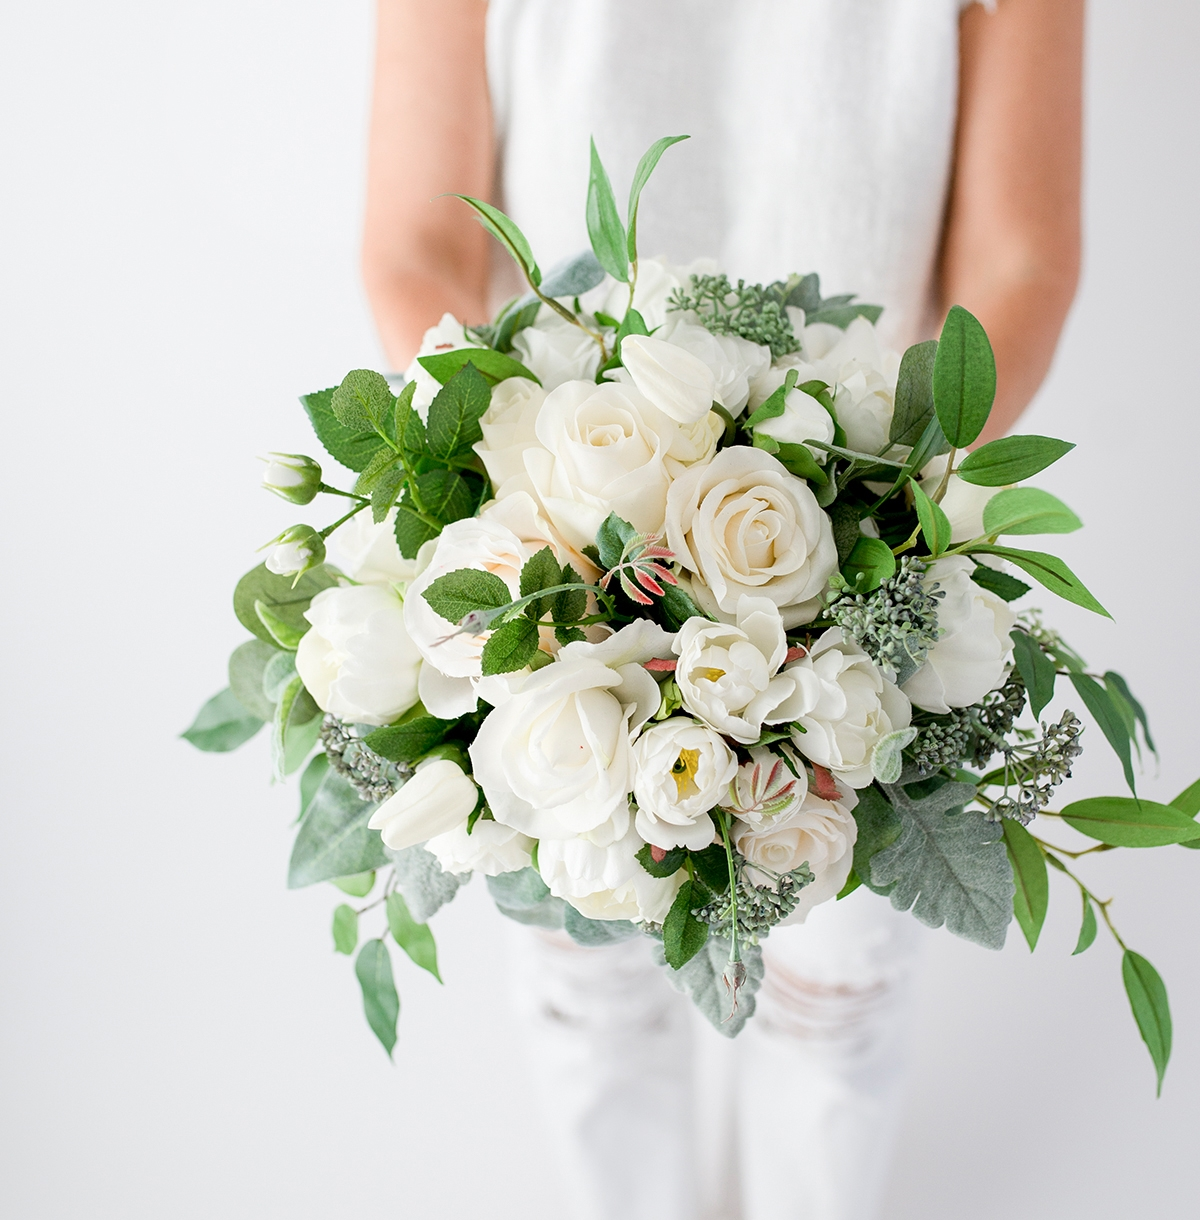 White Spray Flower Bouquet Eucalyptus Roses and Fillers Silk